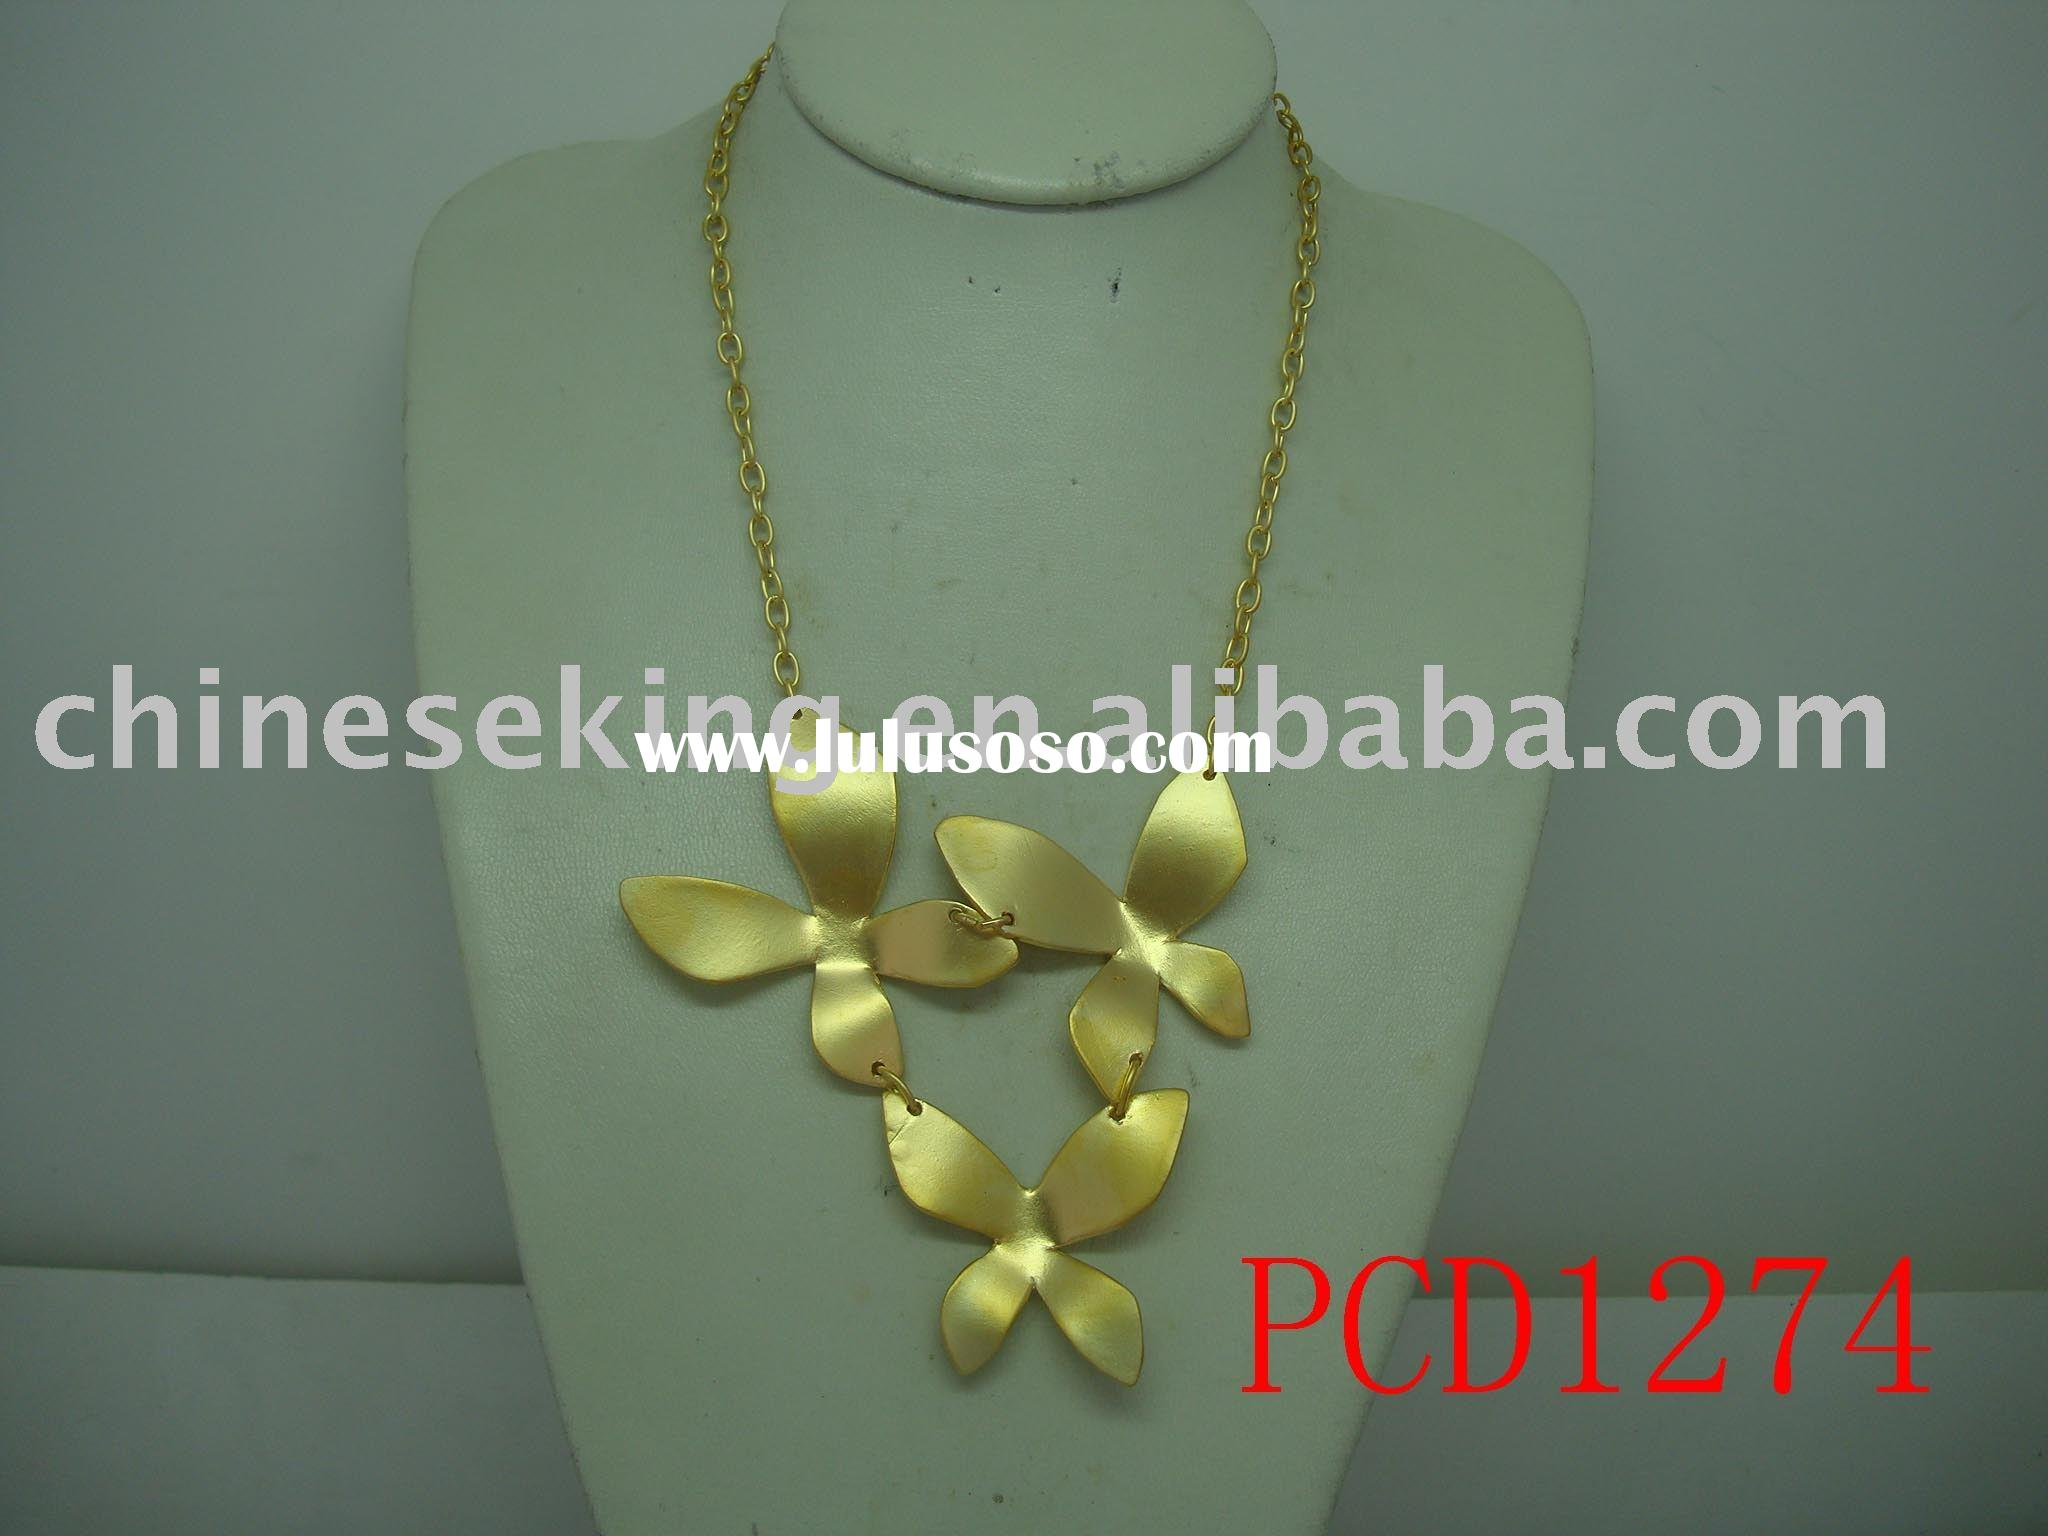 fashion jewelry,gold necklace,fake gold necklace, elegant jewelry,flower pendant jewelry,metal alloy